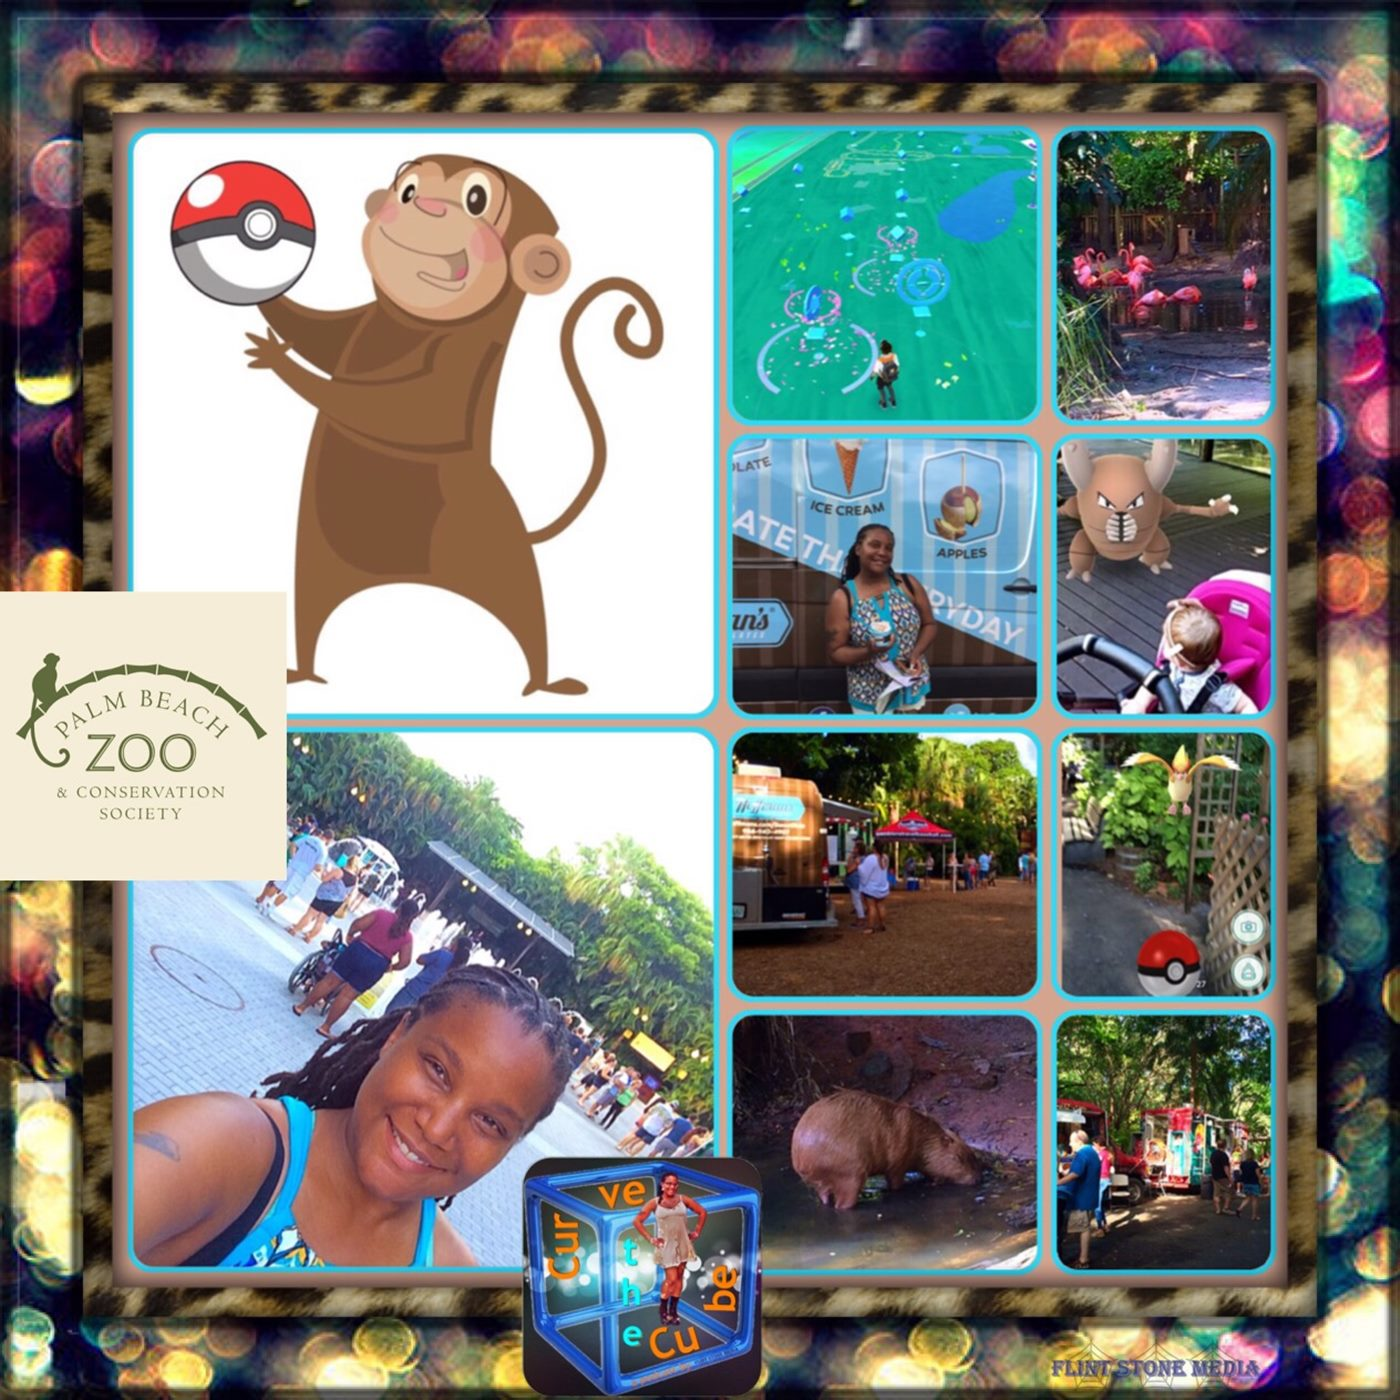 #84 – BONUS: EVENT – Pokemon Go at the Palm Beach Zoo - 2016-07-16